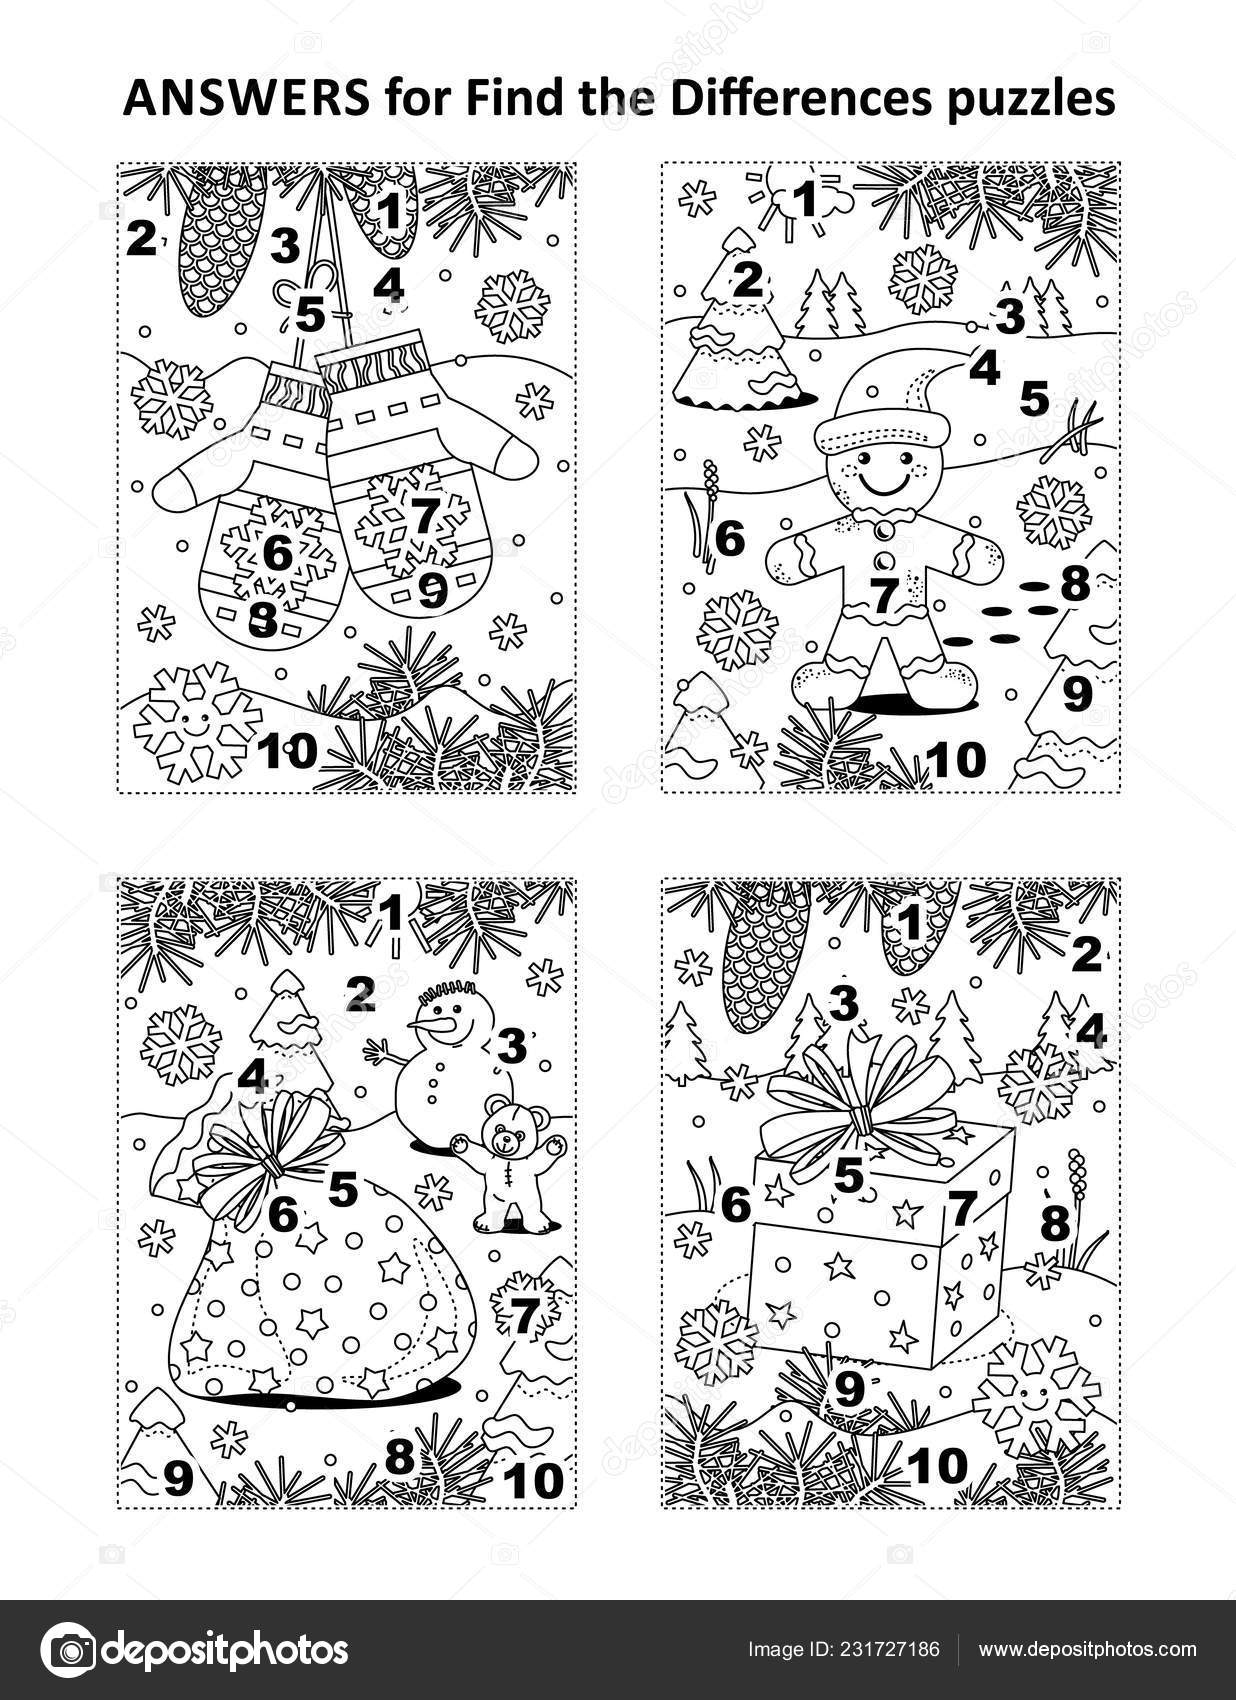 Answers Previous Find Differences Visual Puzzles Winter